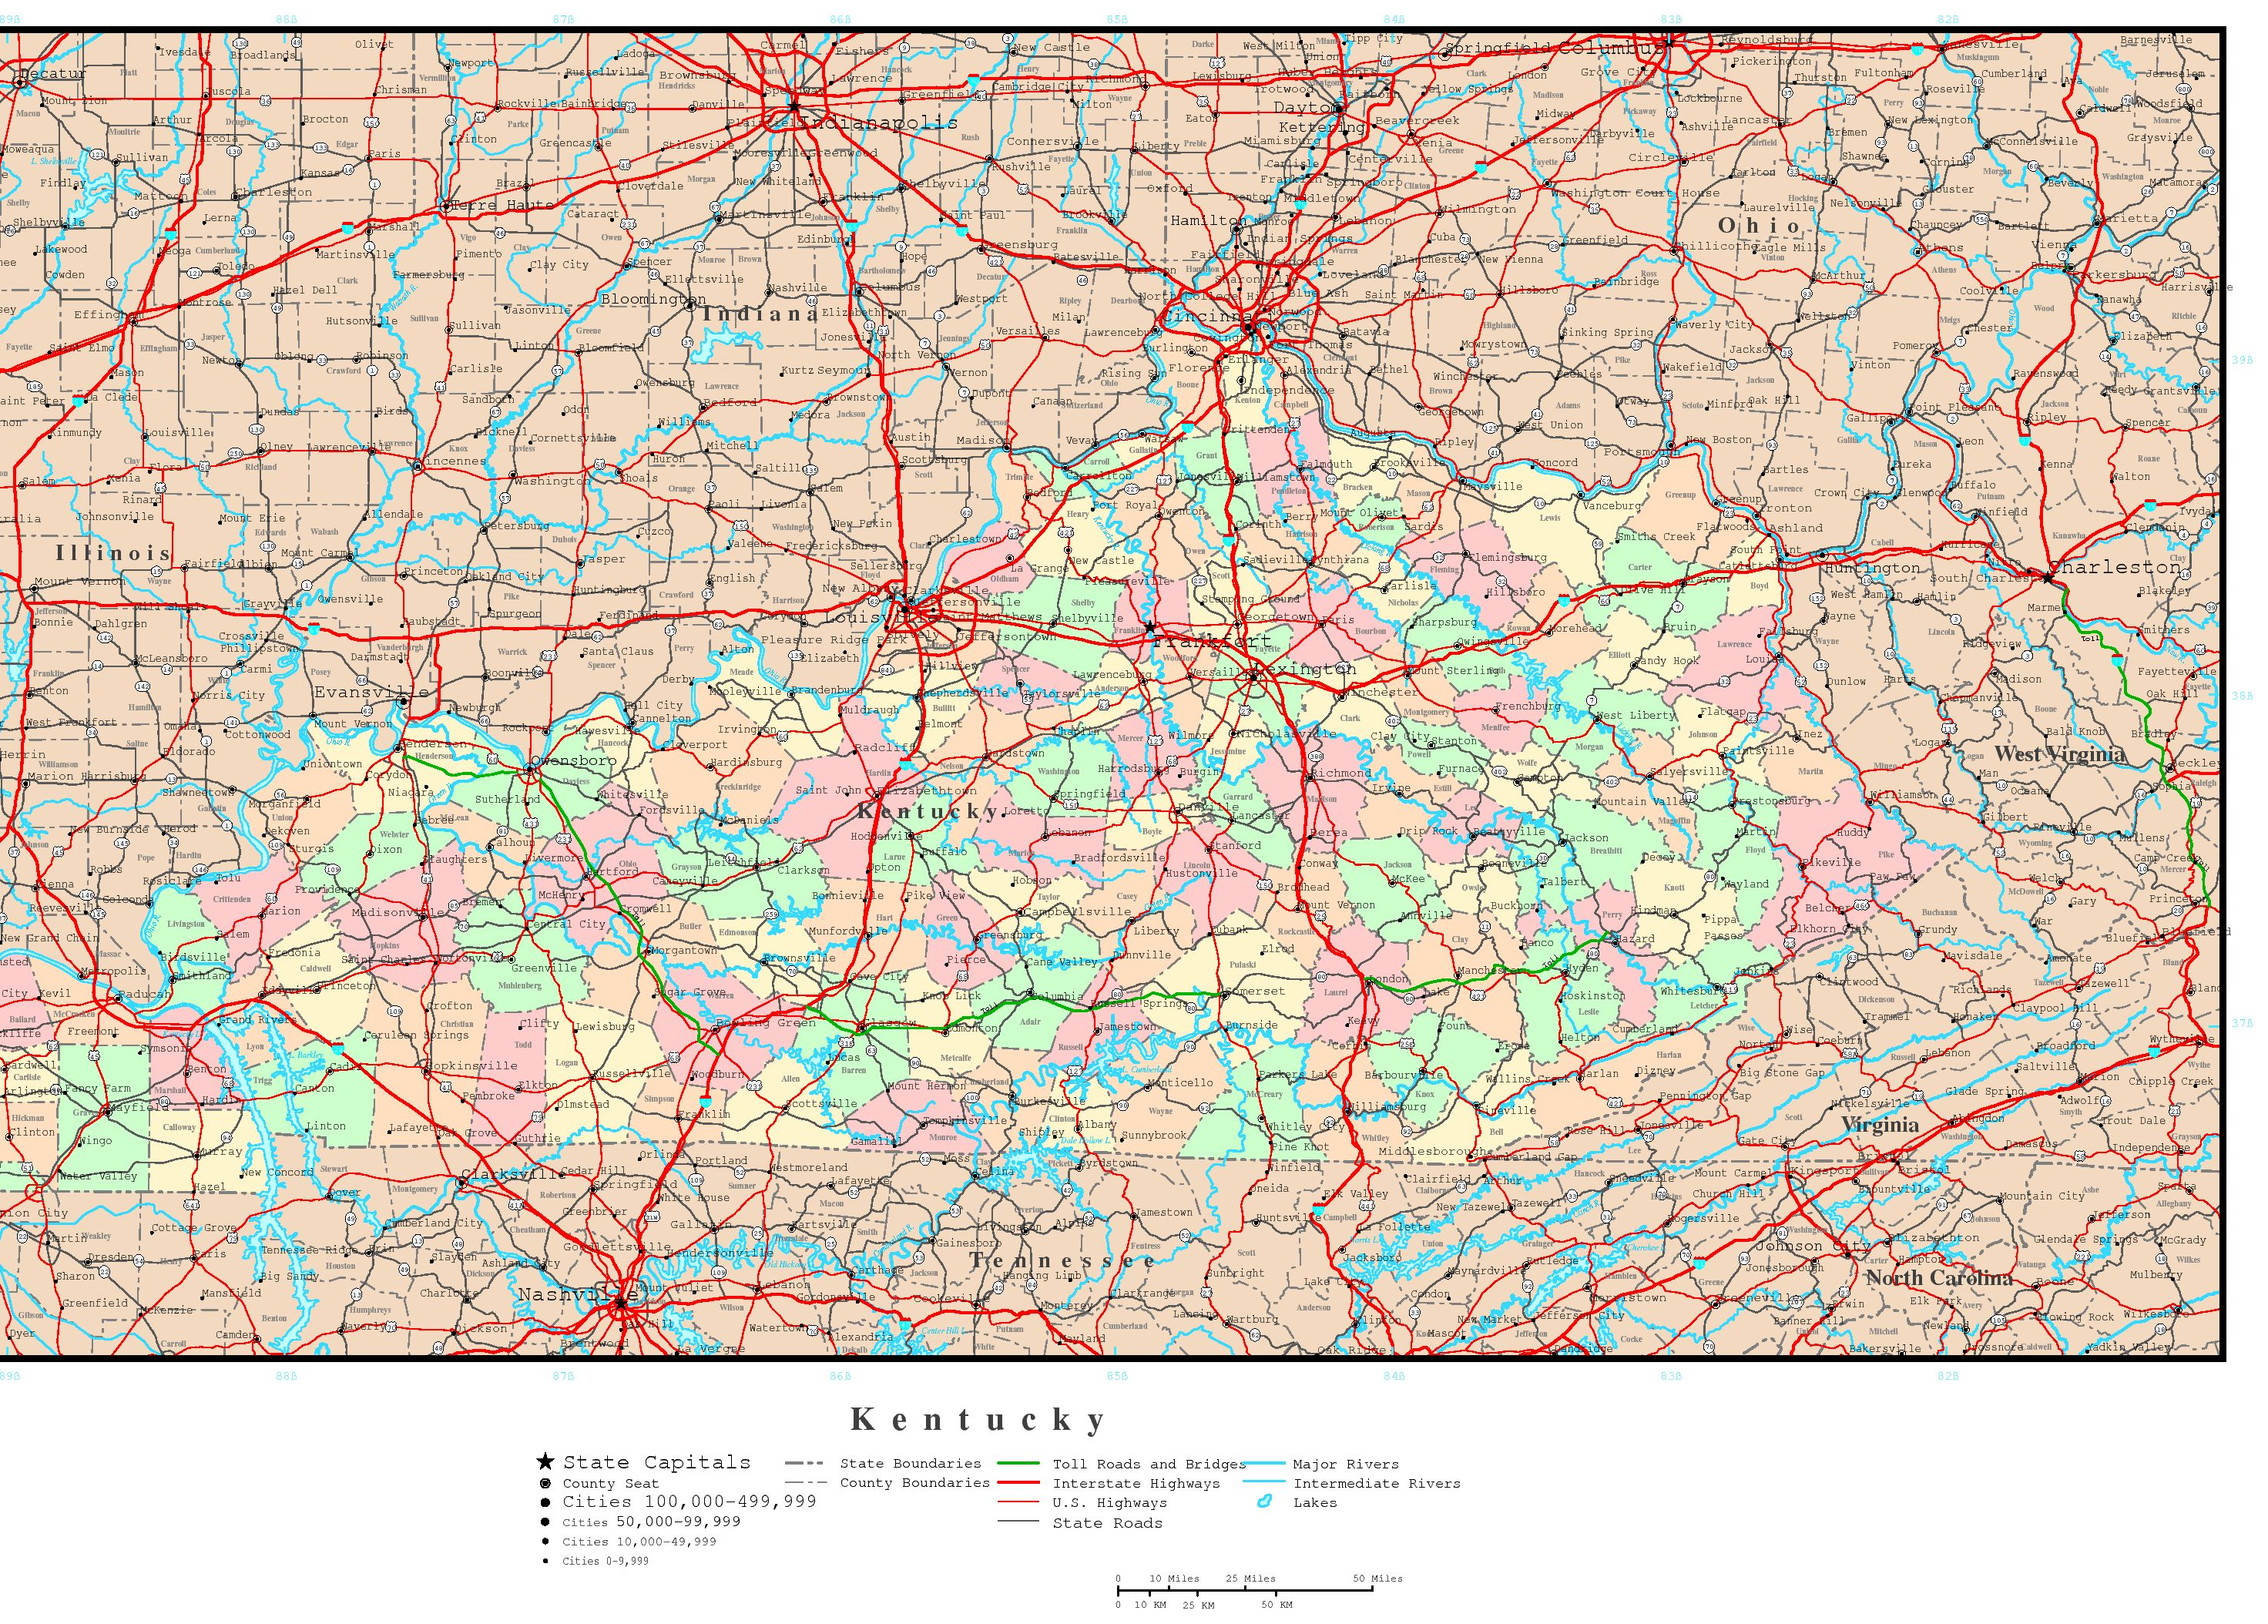 Kentucky Political Map - Map kentucky